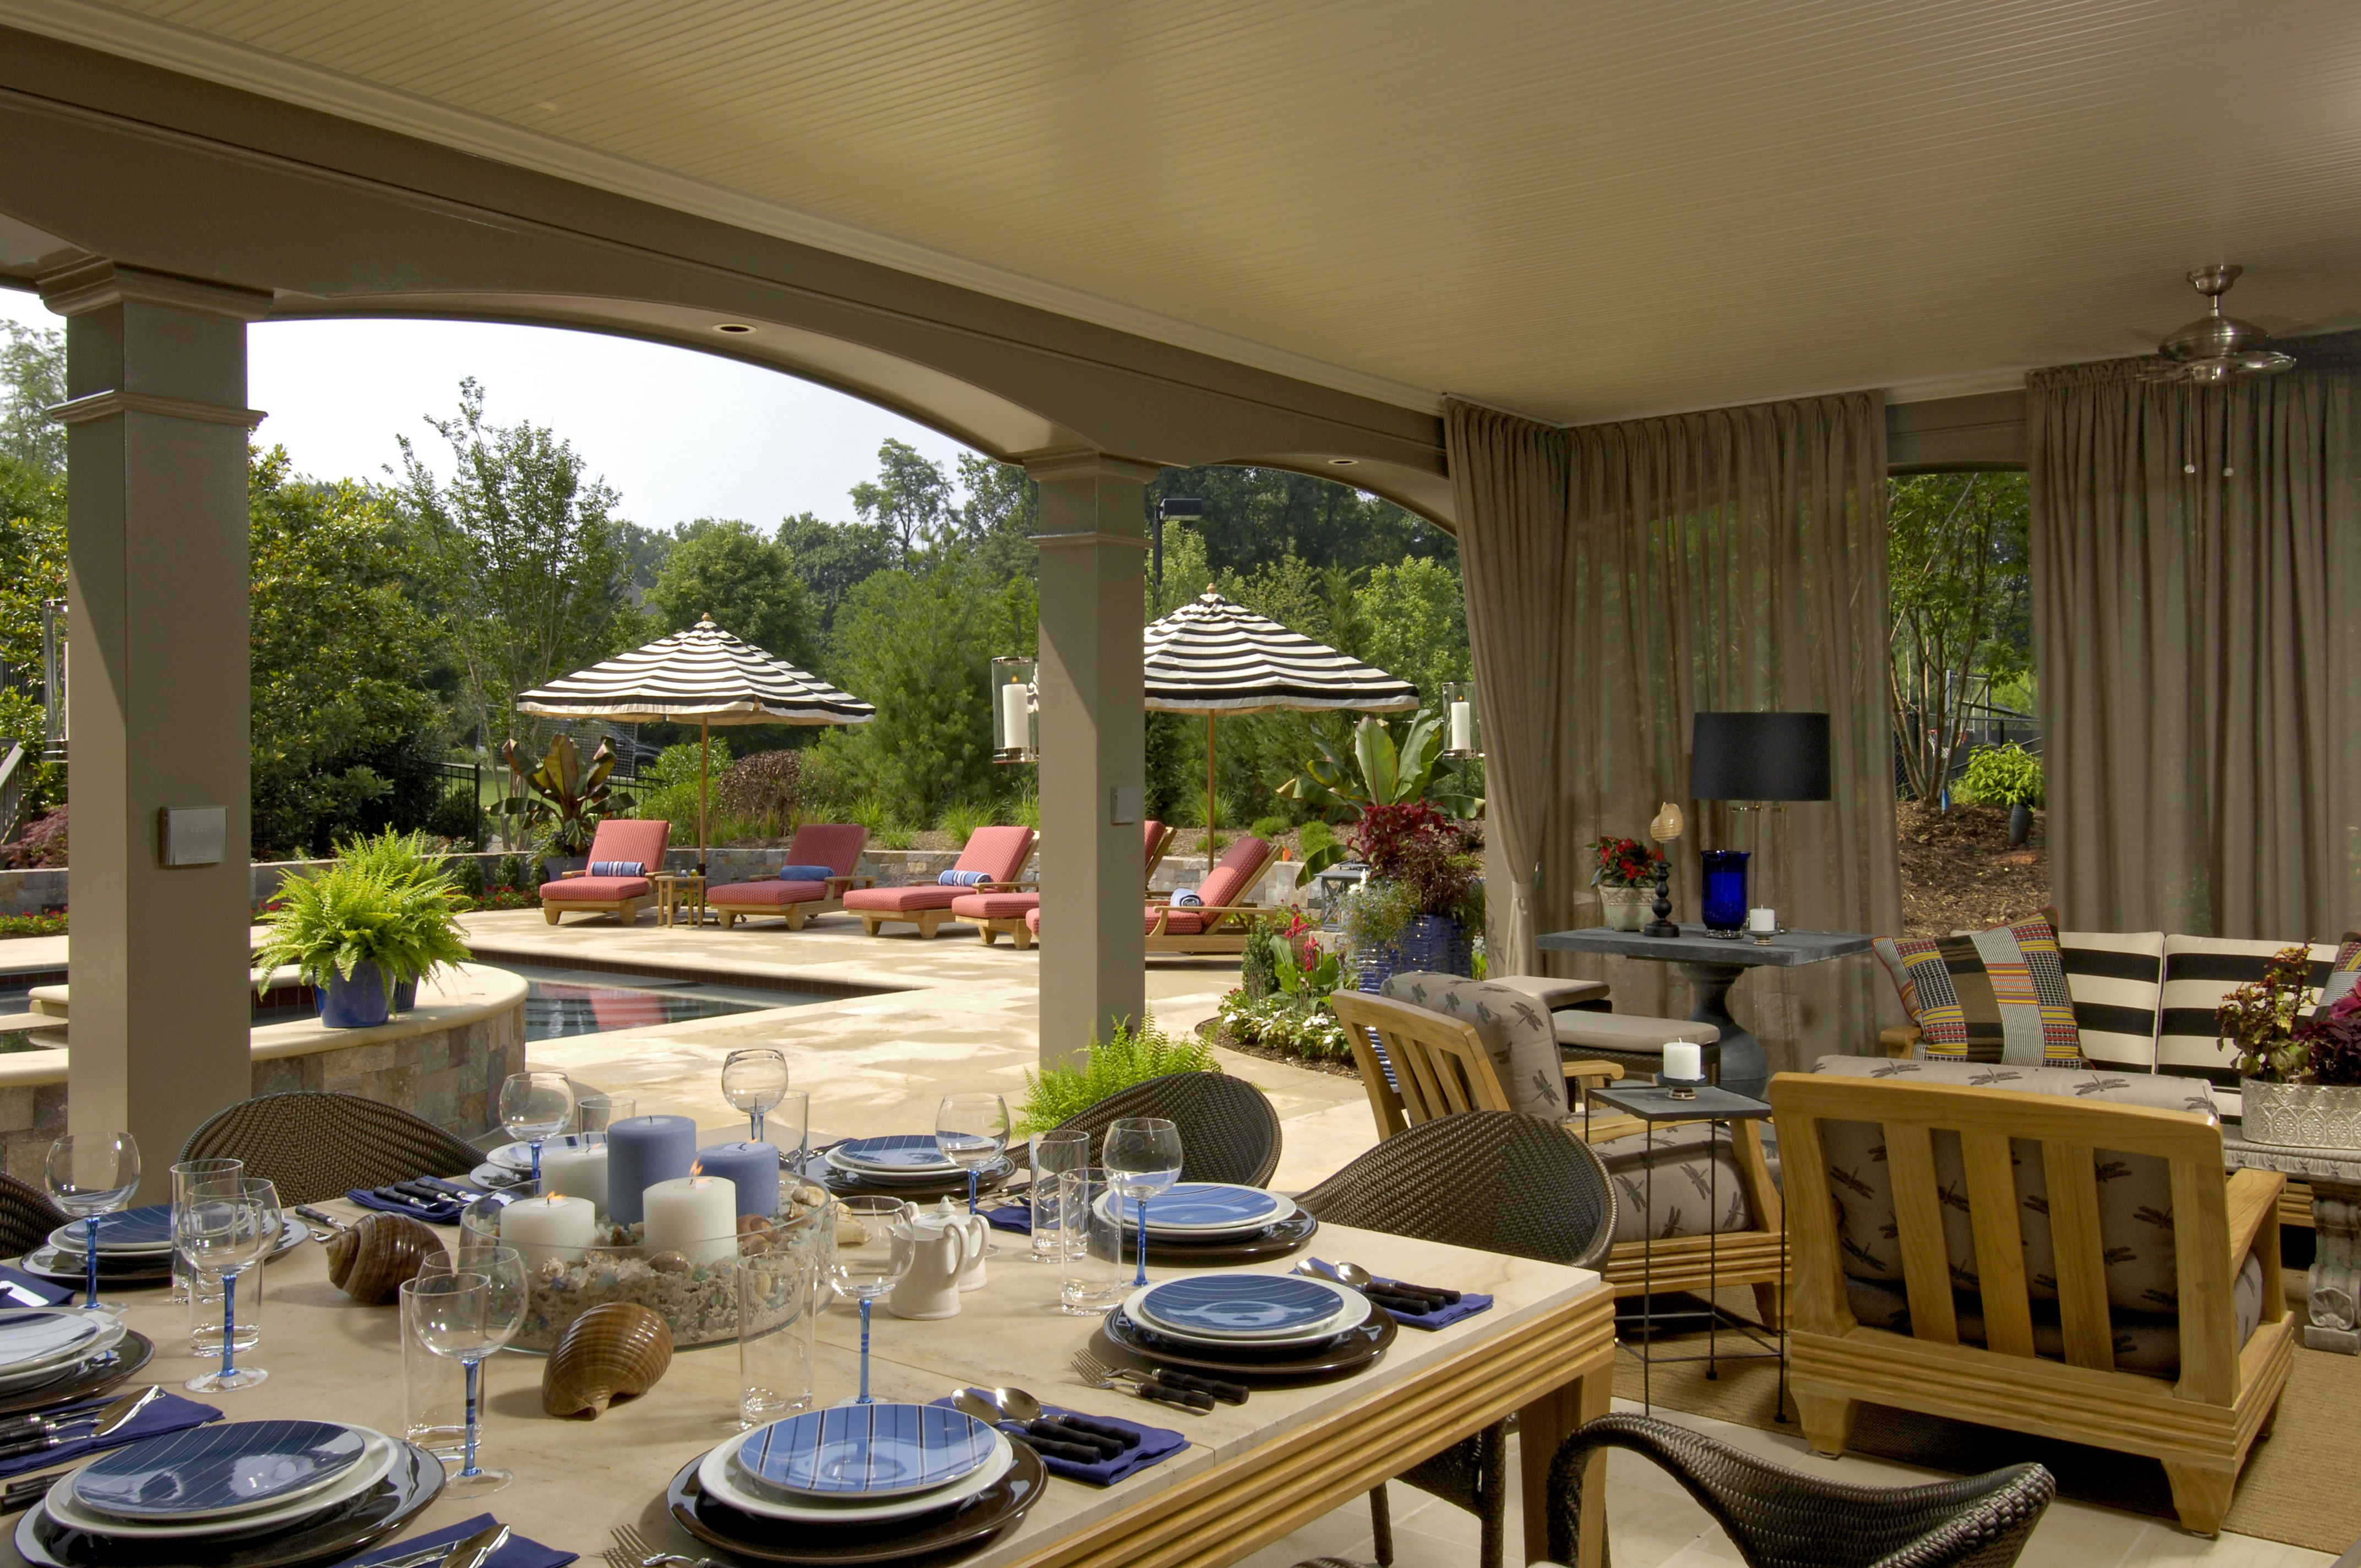 Pool House Patio Dining Area Outdoor Dining Couch Chairs